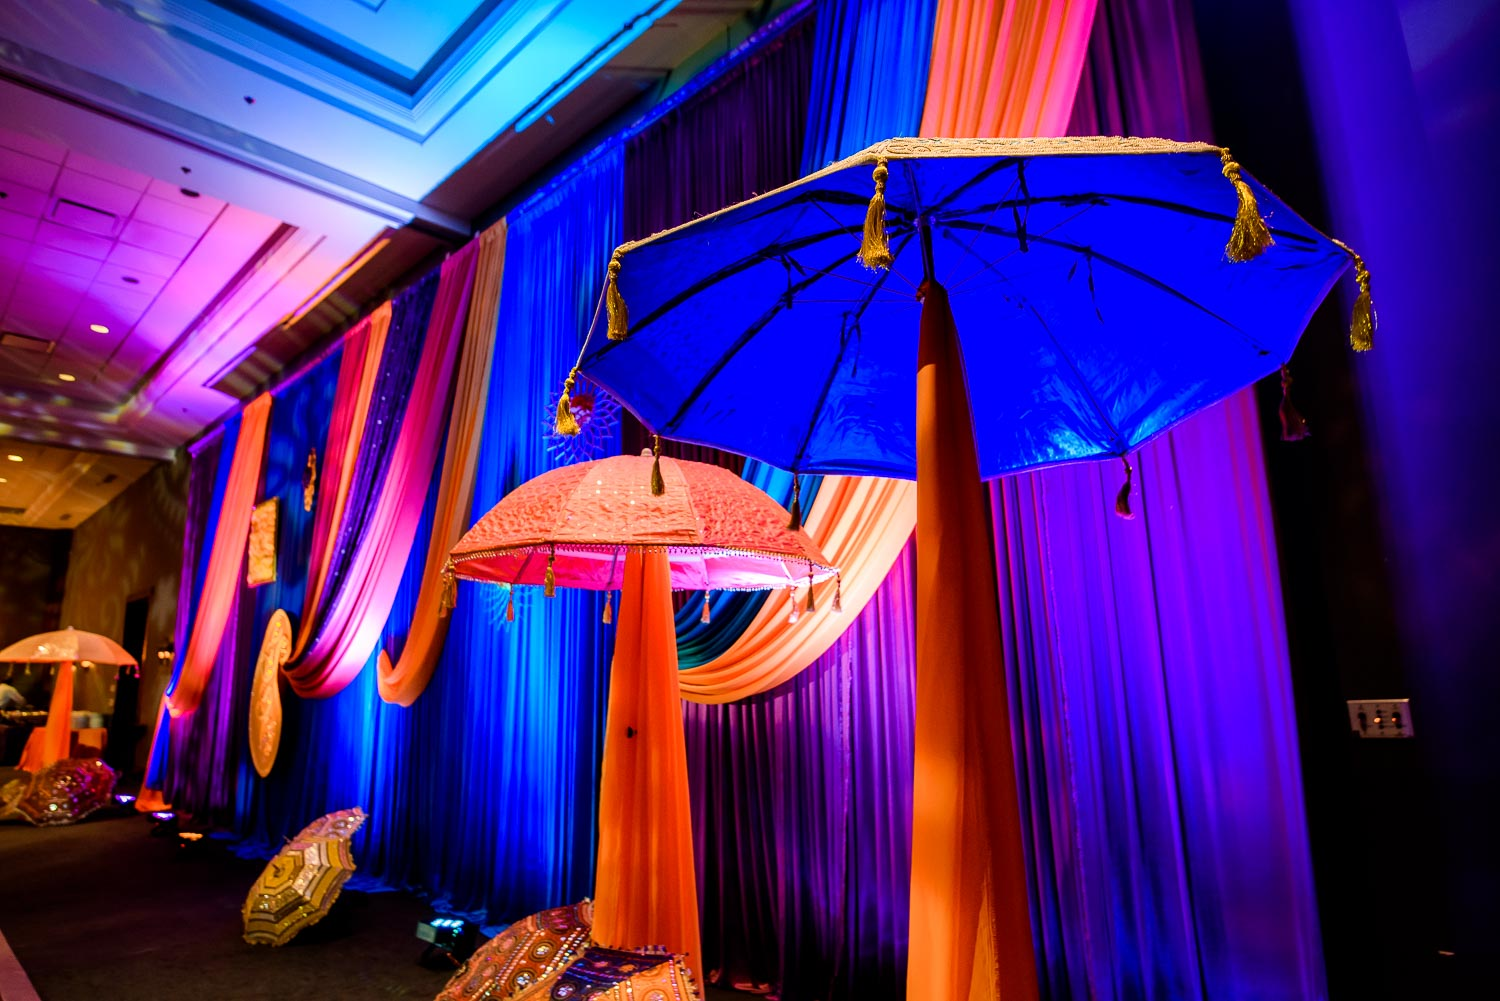 Decor at an Indian wedding sangeet at Stonegate Banquets in Hoffman Estates.